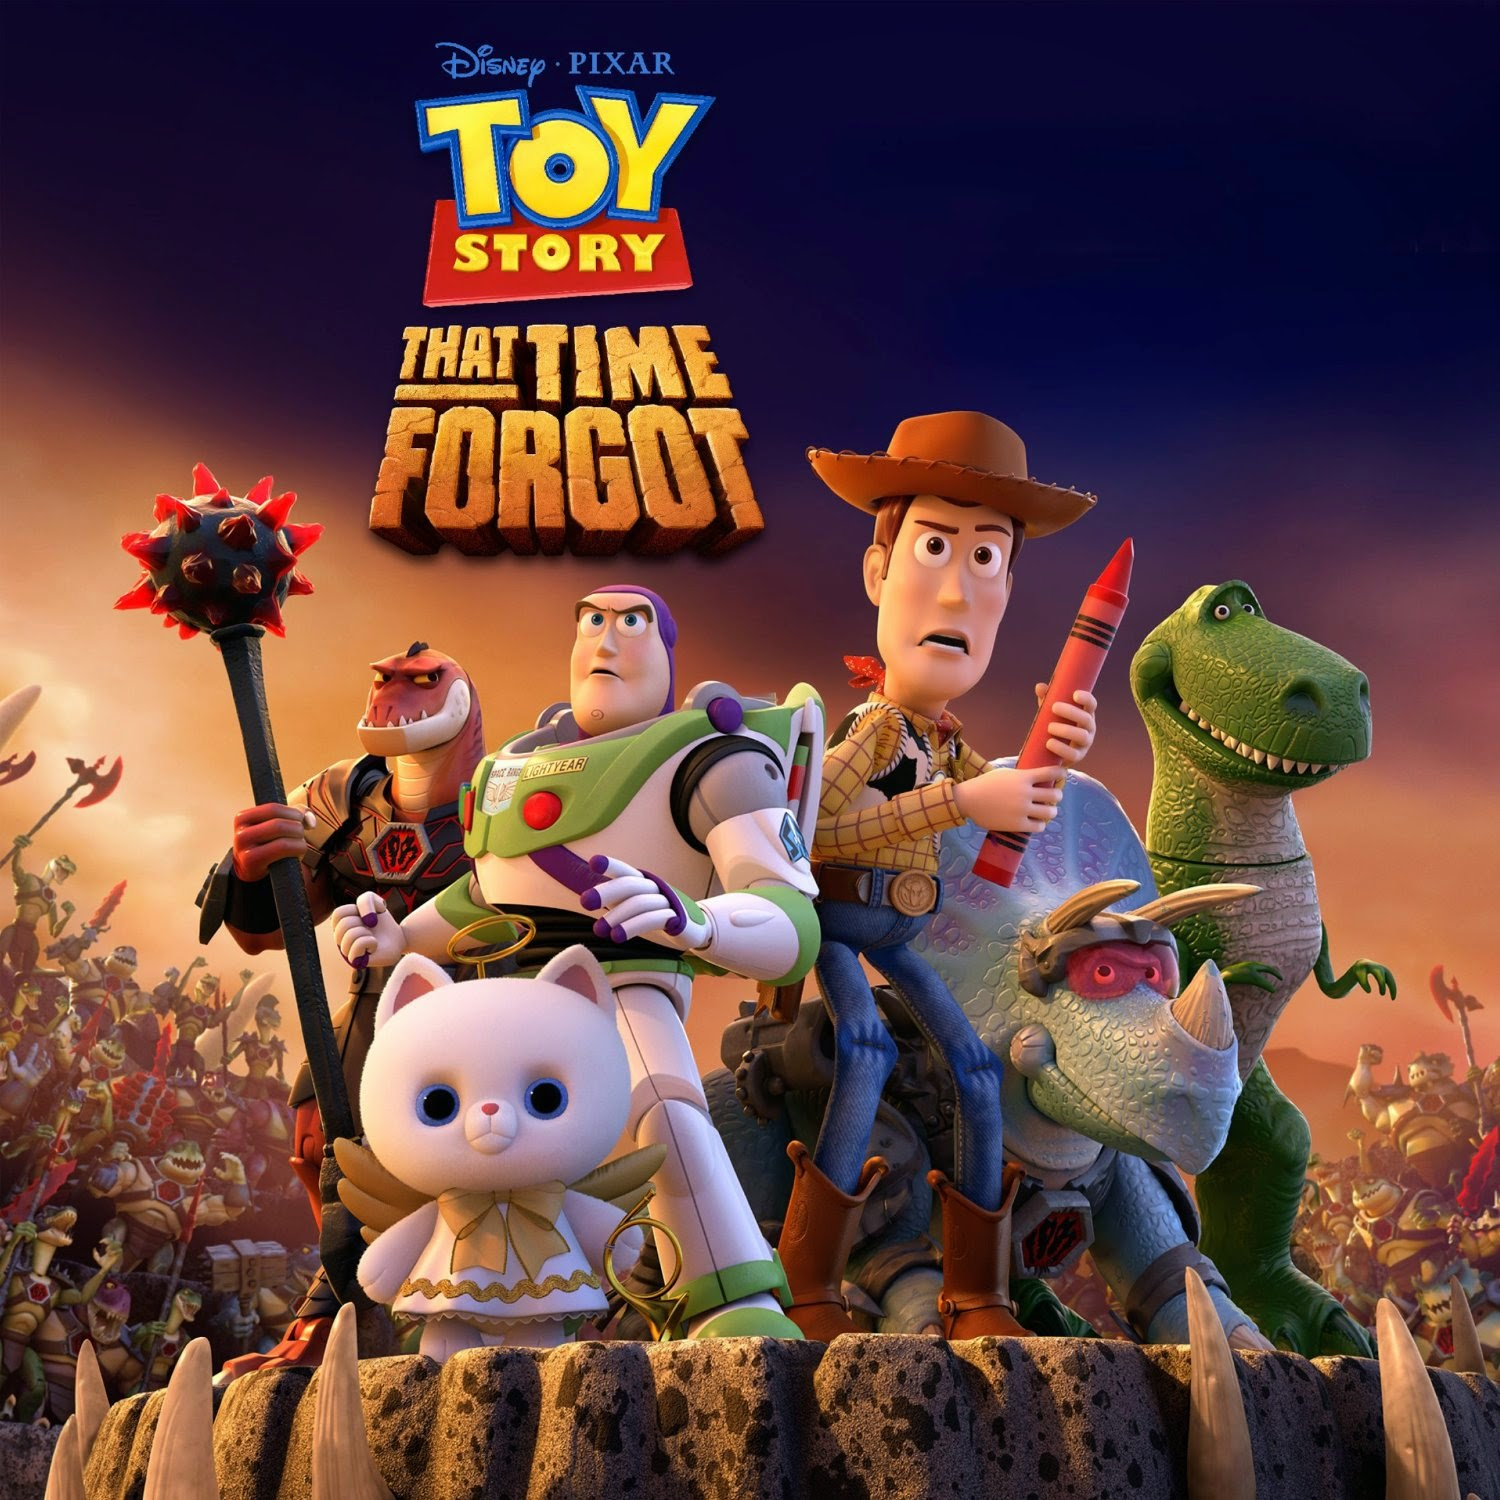 Toy Story That Time Forgot Digital Storybook Coming Soon